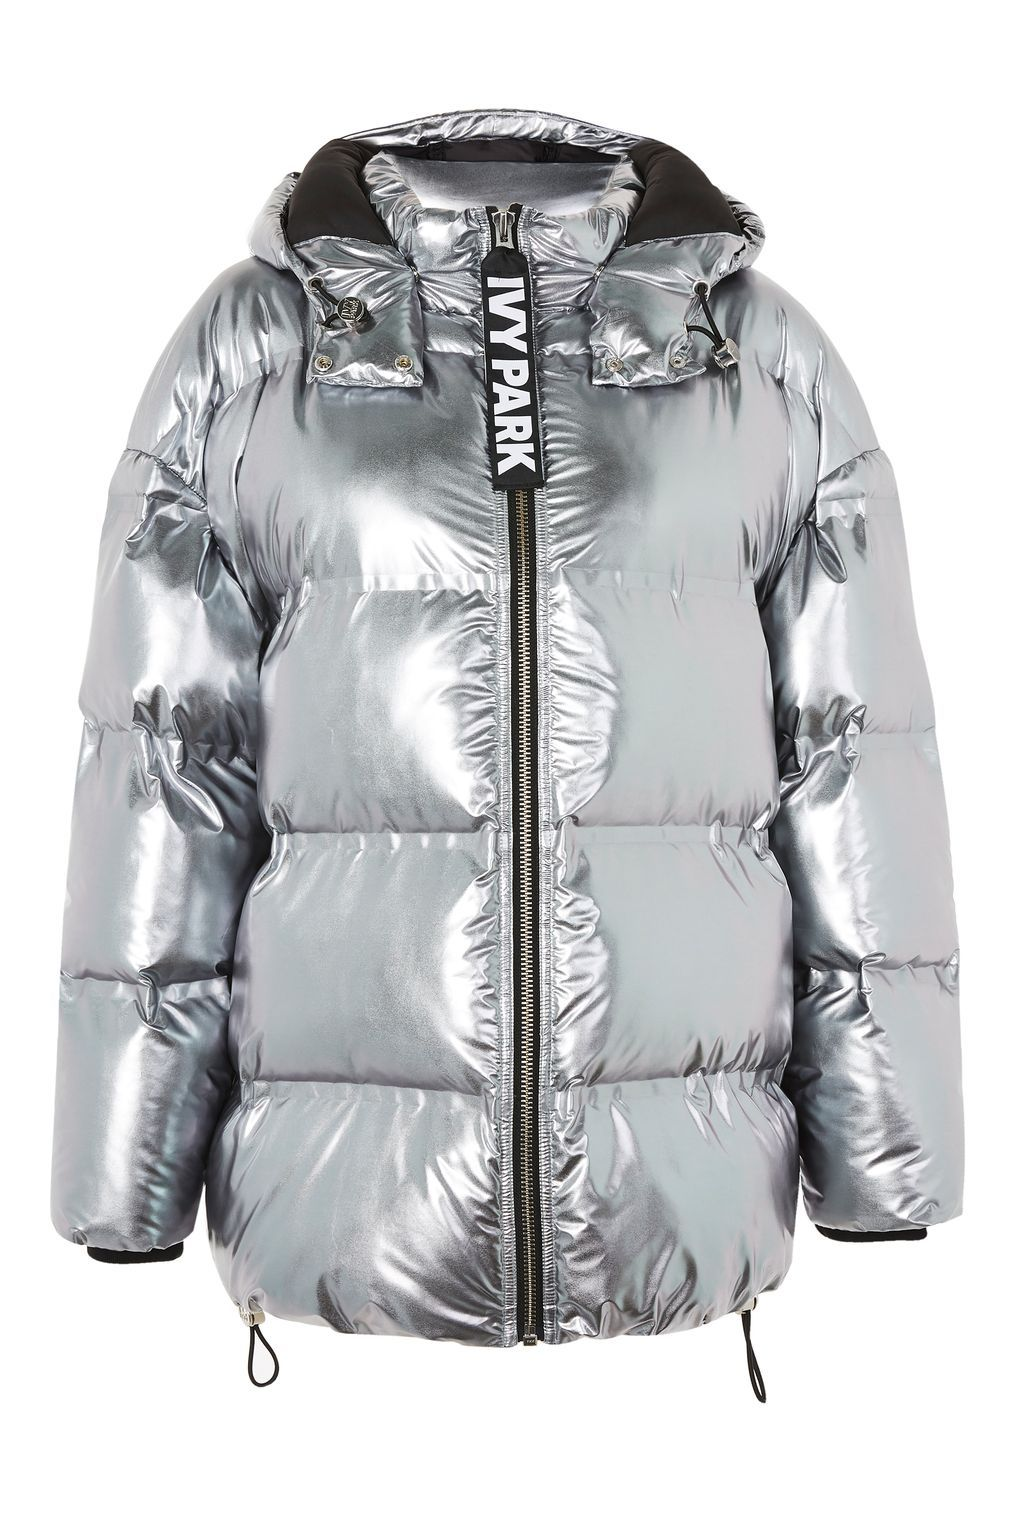 cfe210926 Pewter Bonded Puffa Jacket by Ivy Park - Jackets & Coats - Clothing ...